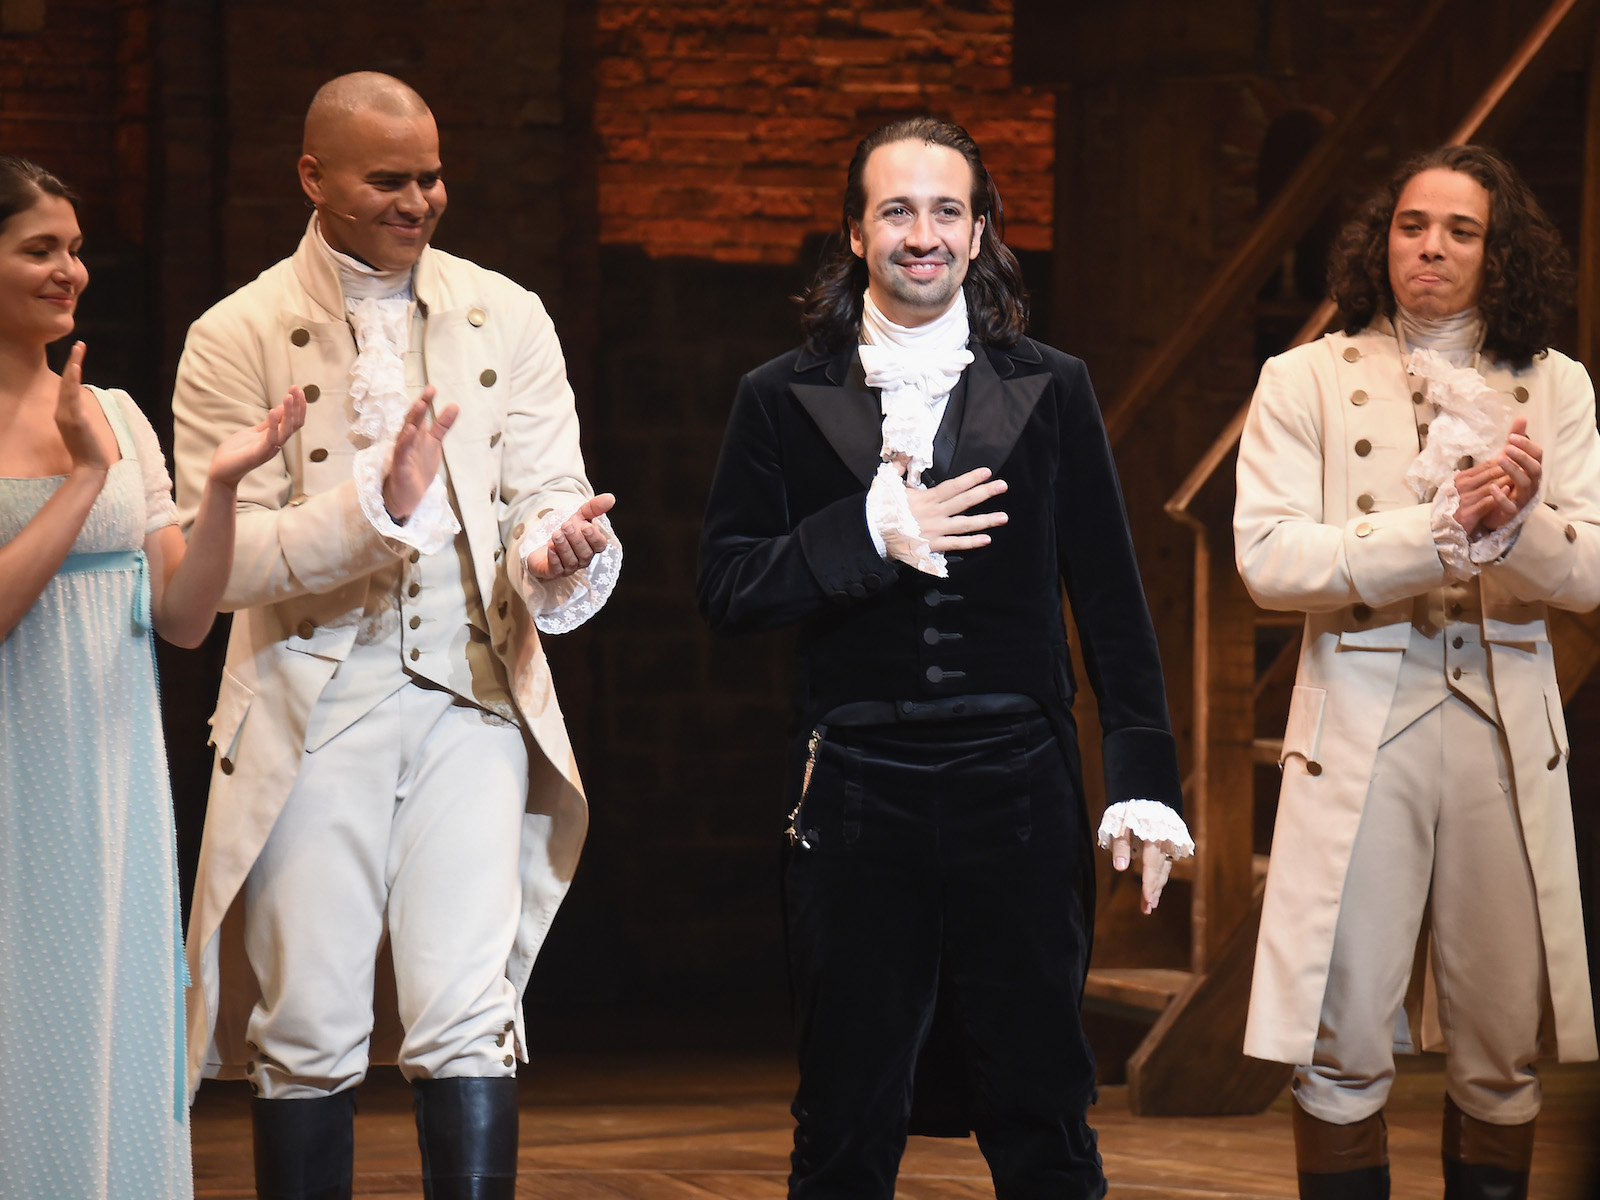 Seattle Restaurant's 'Hamilton' Menu Features Musical-Themed Dishes and Drinks During the Show's Run